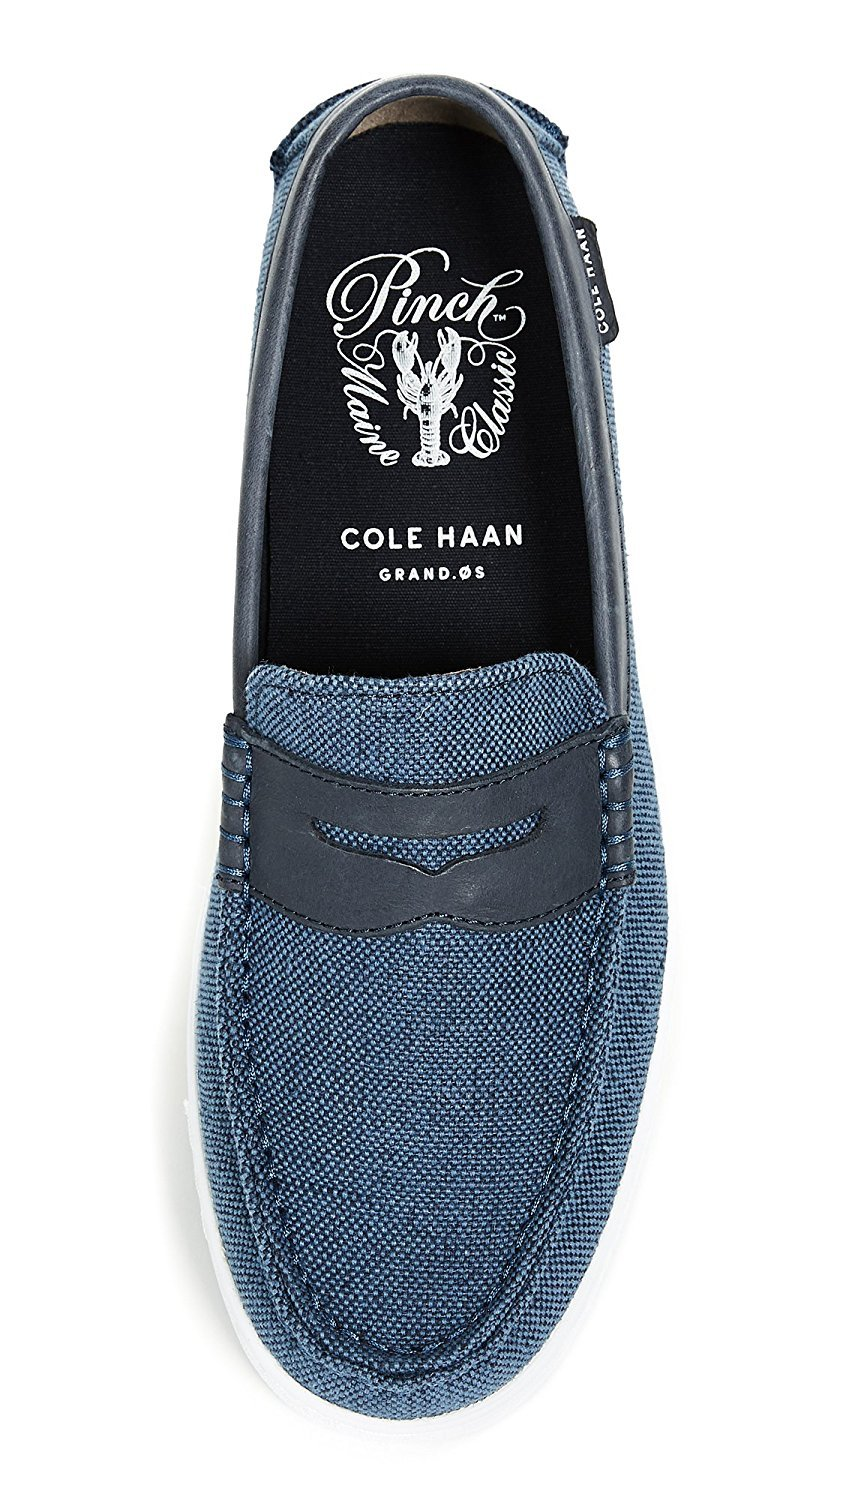 Cole Haan Pinch Weekender Penny Loafers